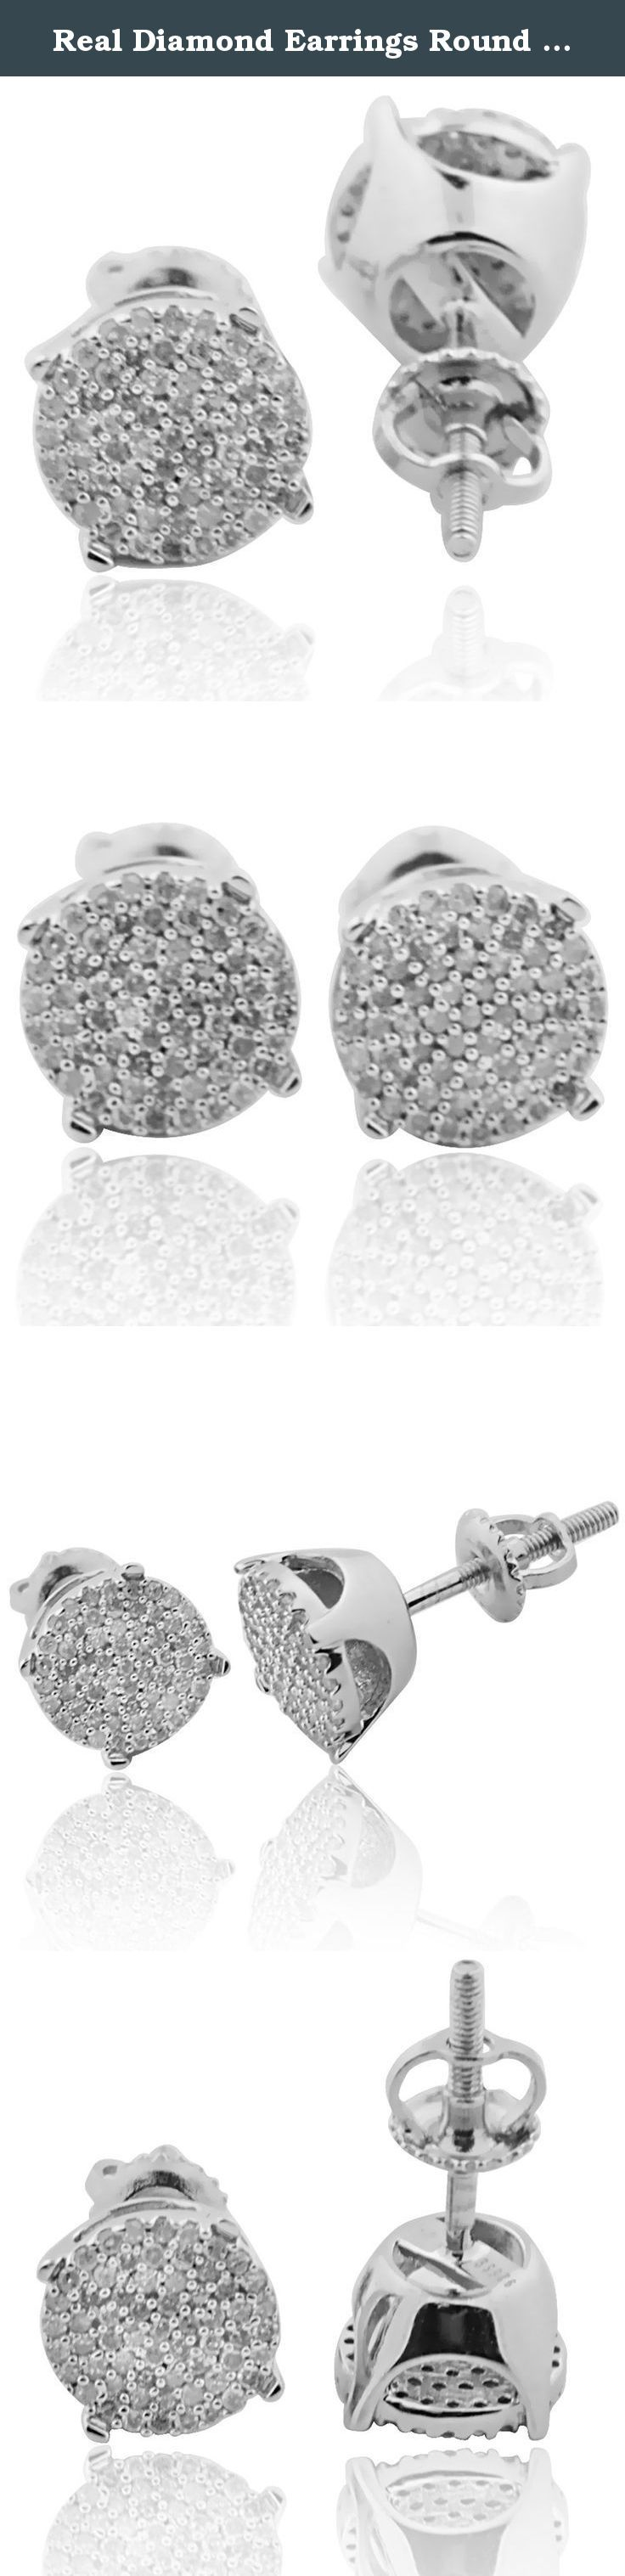 Real Diamond Earrings Round Cluster 8mm 0.35ctw Pave Set White Gold-Tone Silver(i2/i3, I/j). Real Diamond Earrings Round Cluster 8mm 0.35ctw Pave Set White Gold-Tone Silver(i2/i3, I/j) Item Type: Diamond Pendant / Charm Metal Type: 925 Sterling-silver Gem Type: White-diamond For Men round cluster earrings for men or women in pave setting Screw back diamond earrings 8mm wide round Beautiful gift box is included 90 Days warranty and 30 days no hassle returns Ships within 24 hours with…